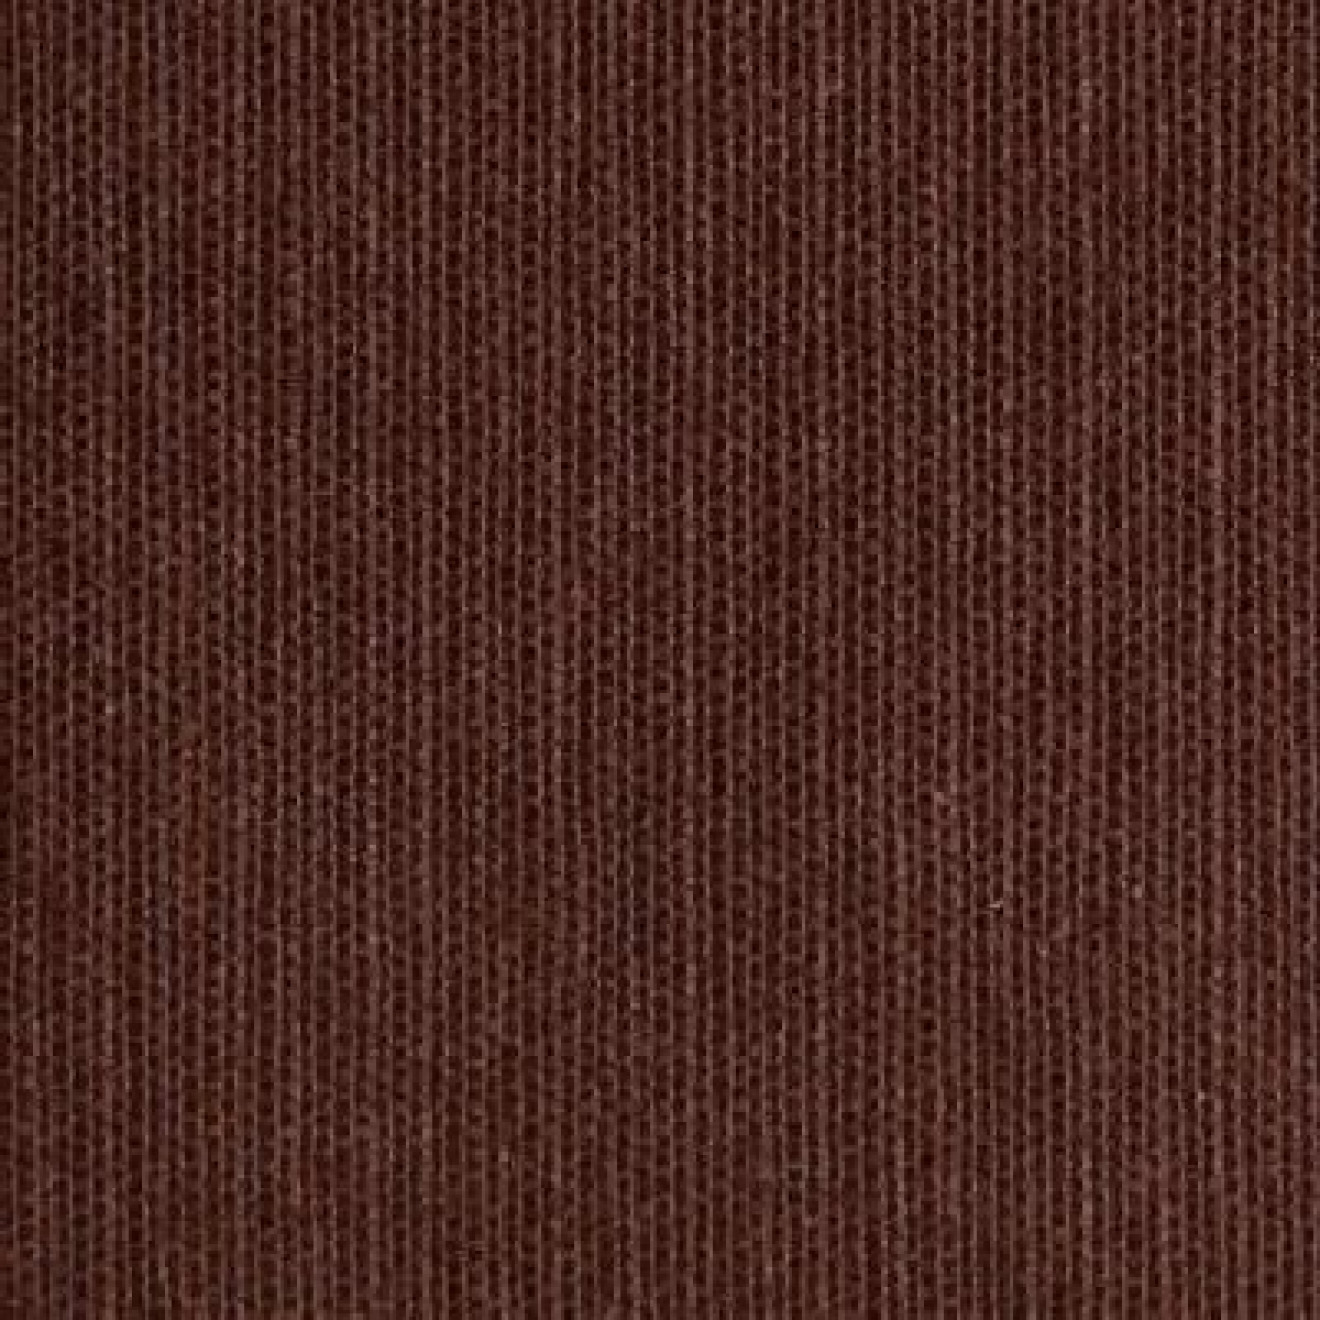 Dreieck - Acrylstoff Loneta Color 156